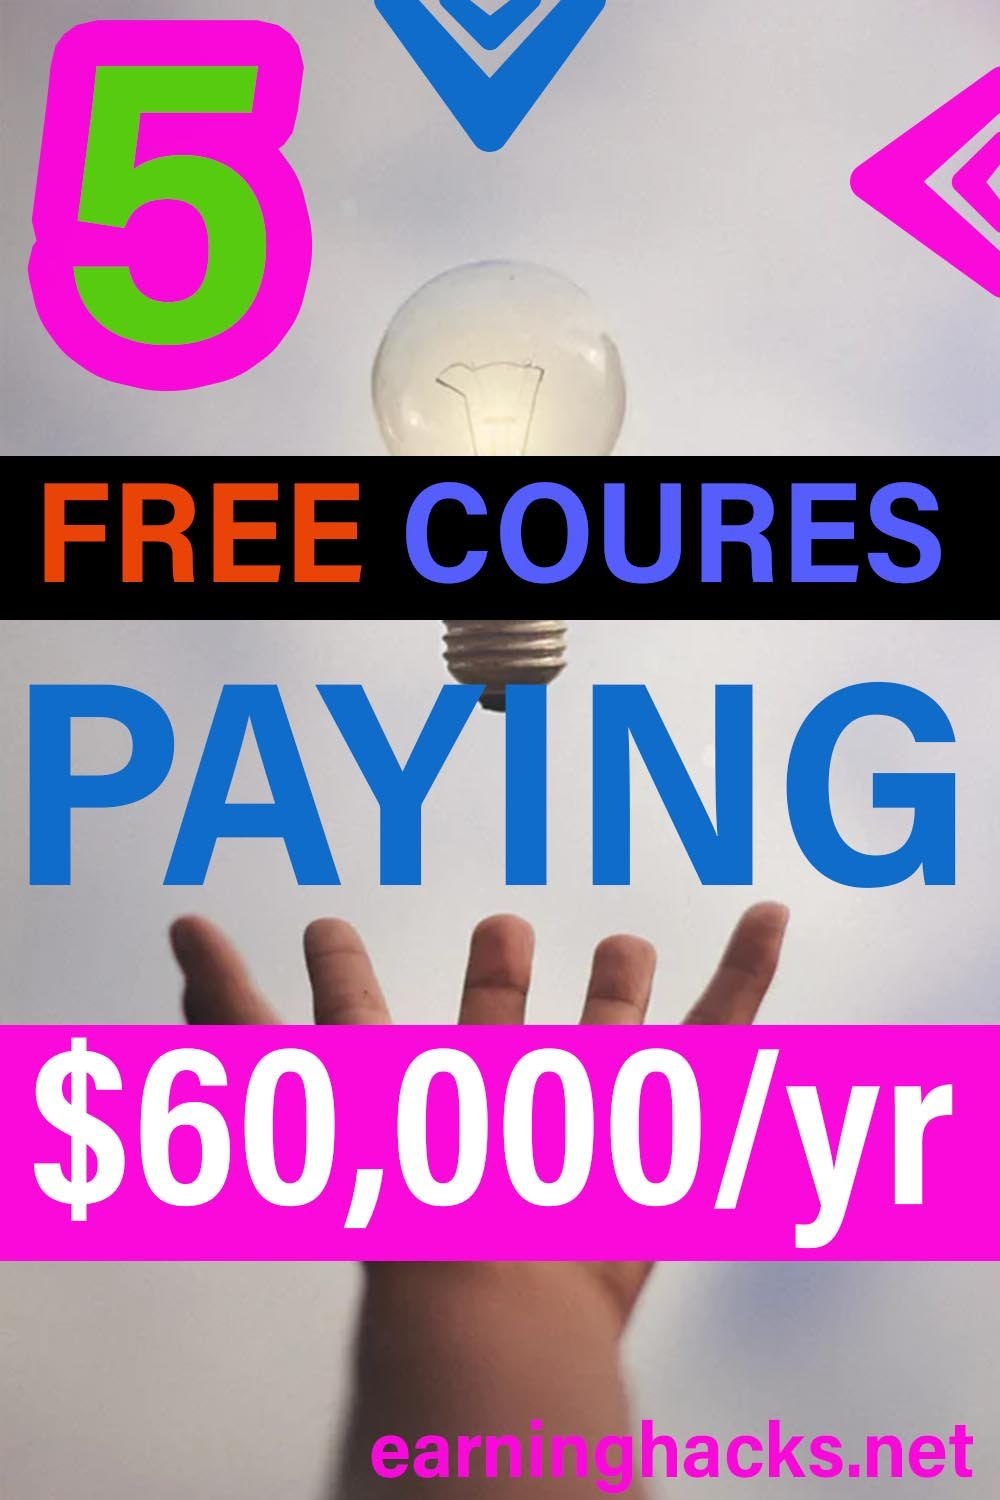 5 Free Courses Paying $60000 year